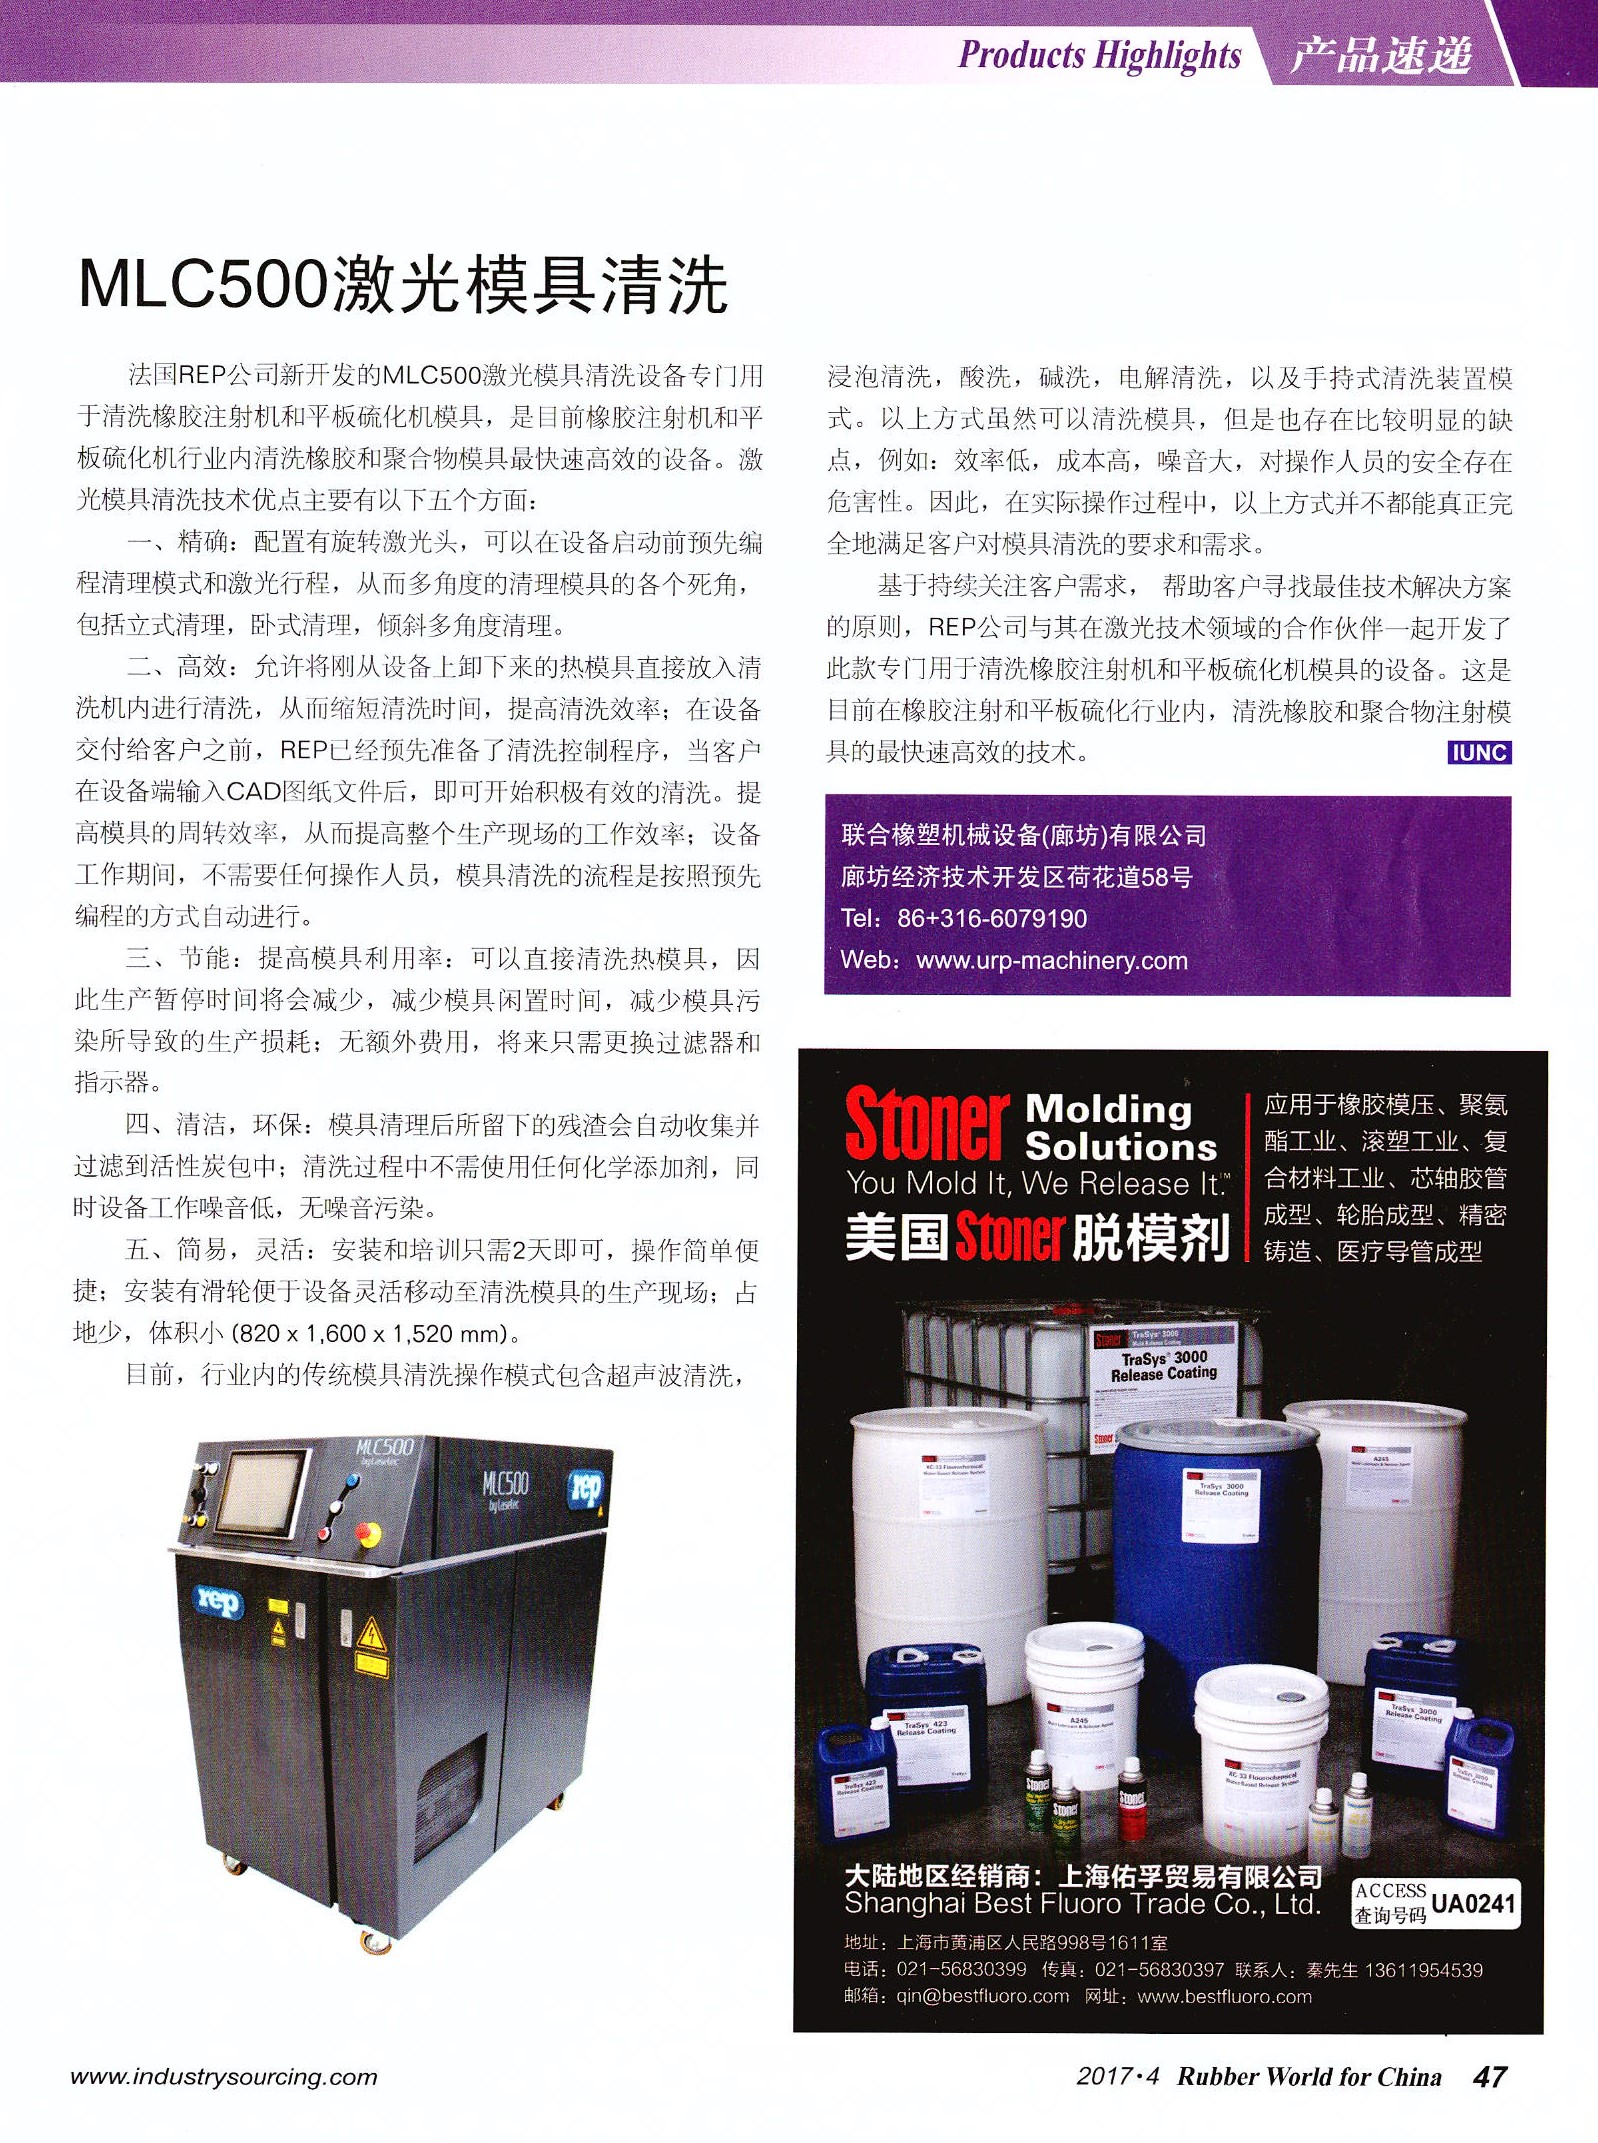 China - Rubber Injection Molding Machines - REP International